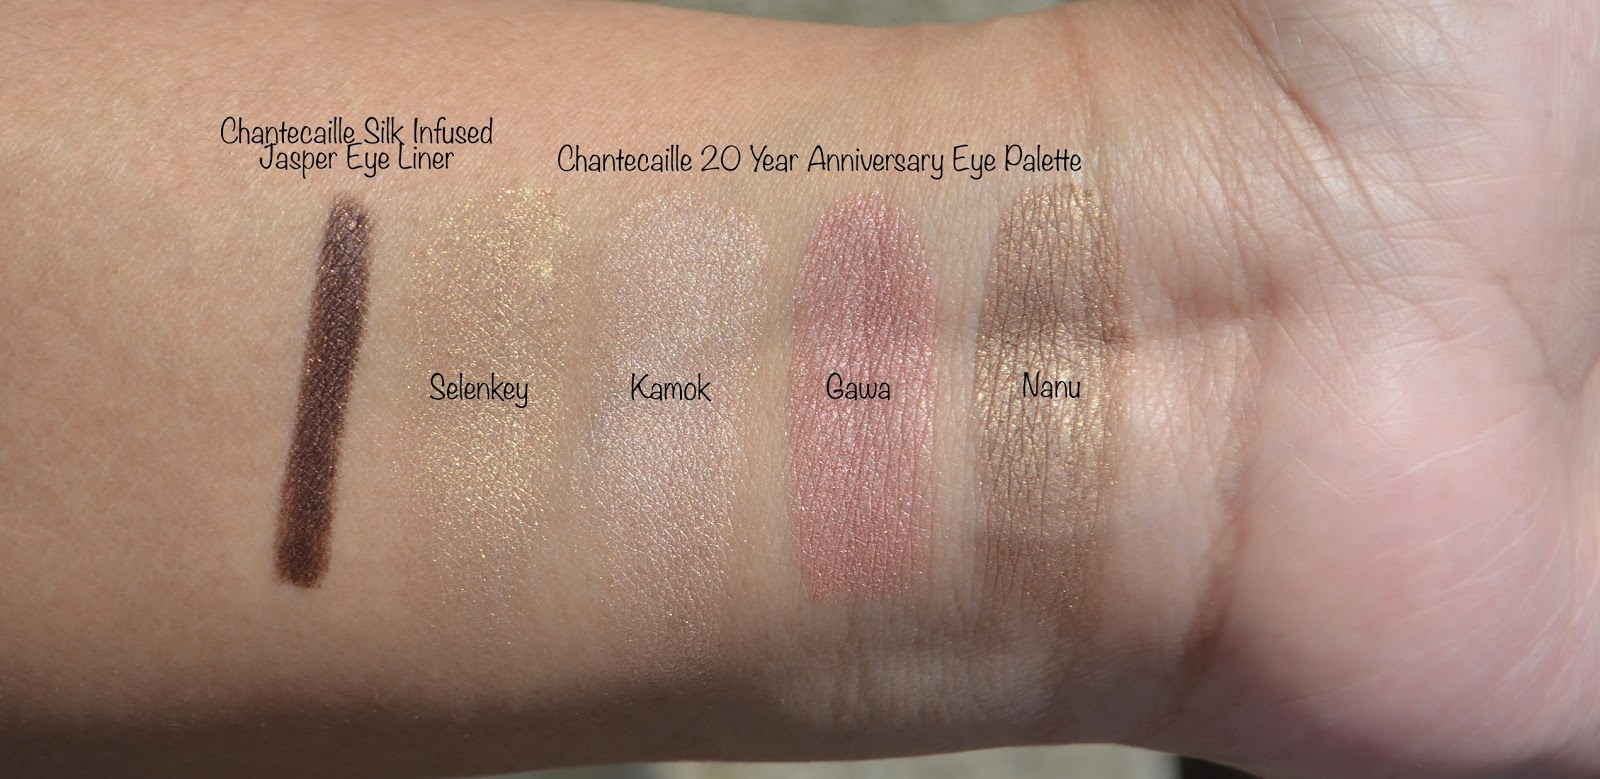 Chantecaille 20 Year Anniversary Eye Palette swatches